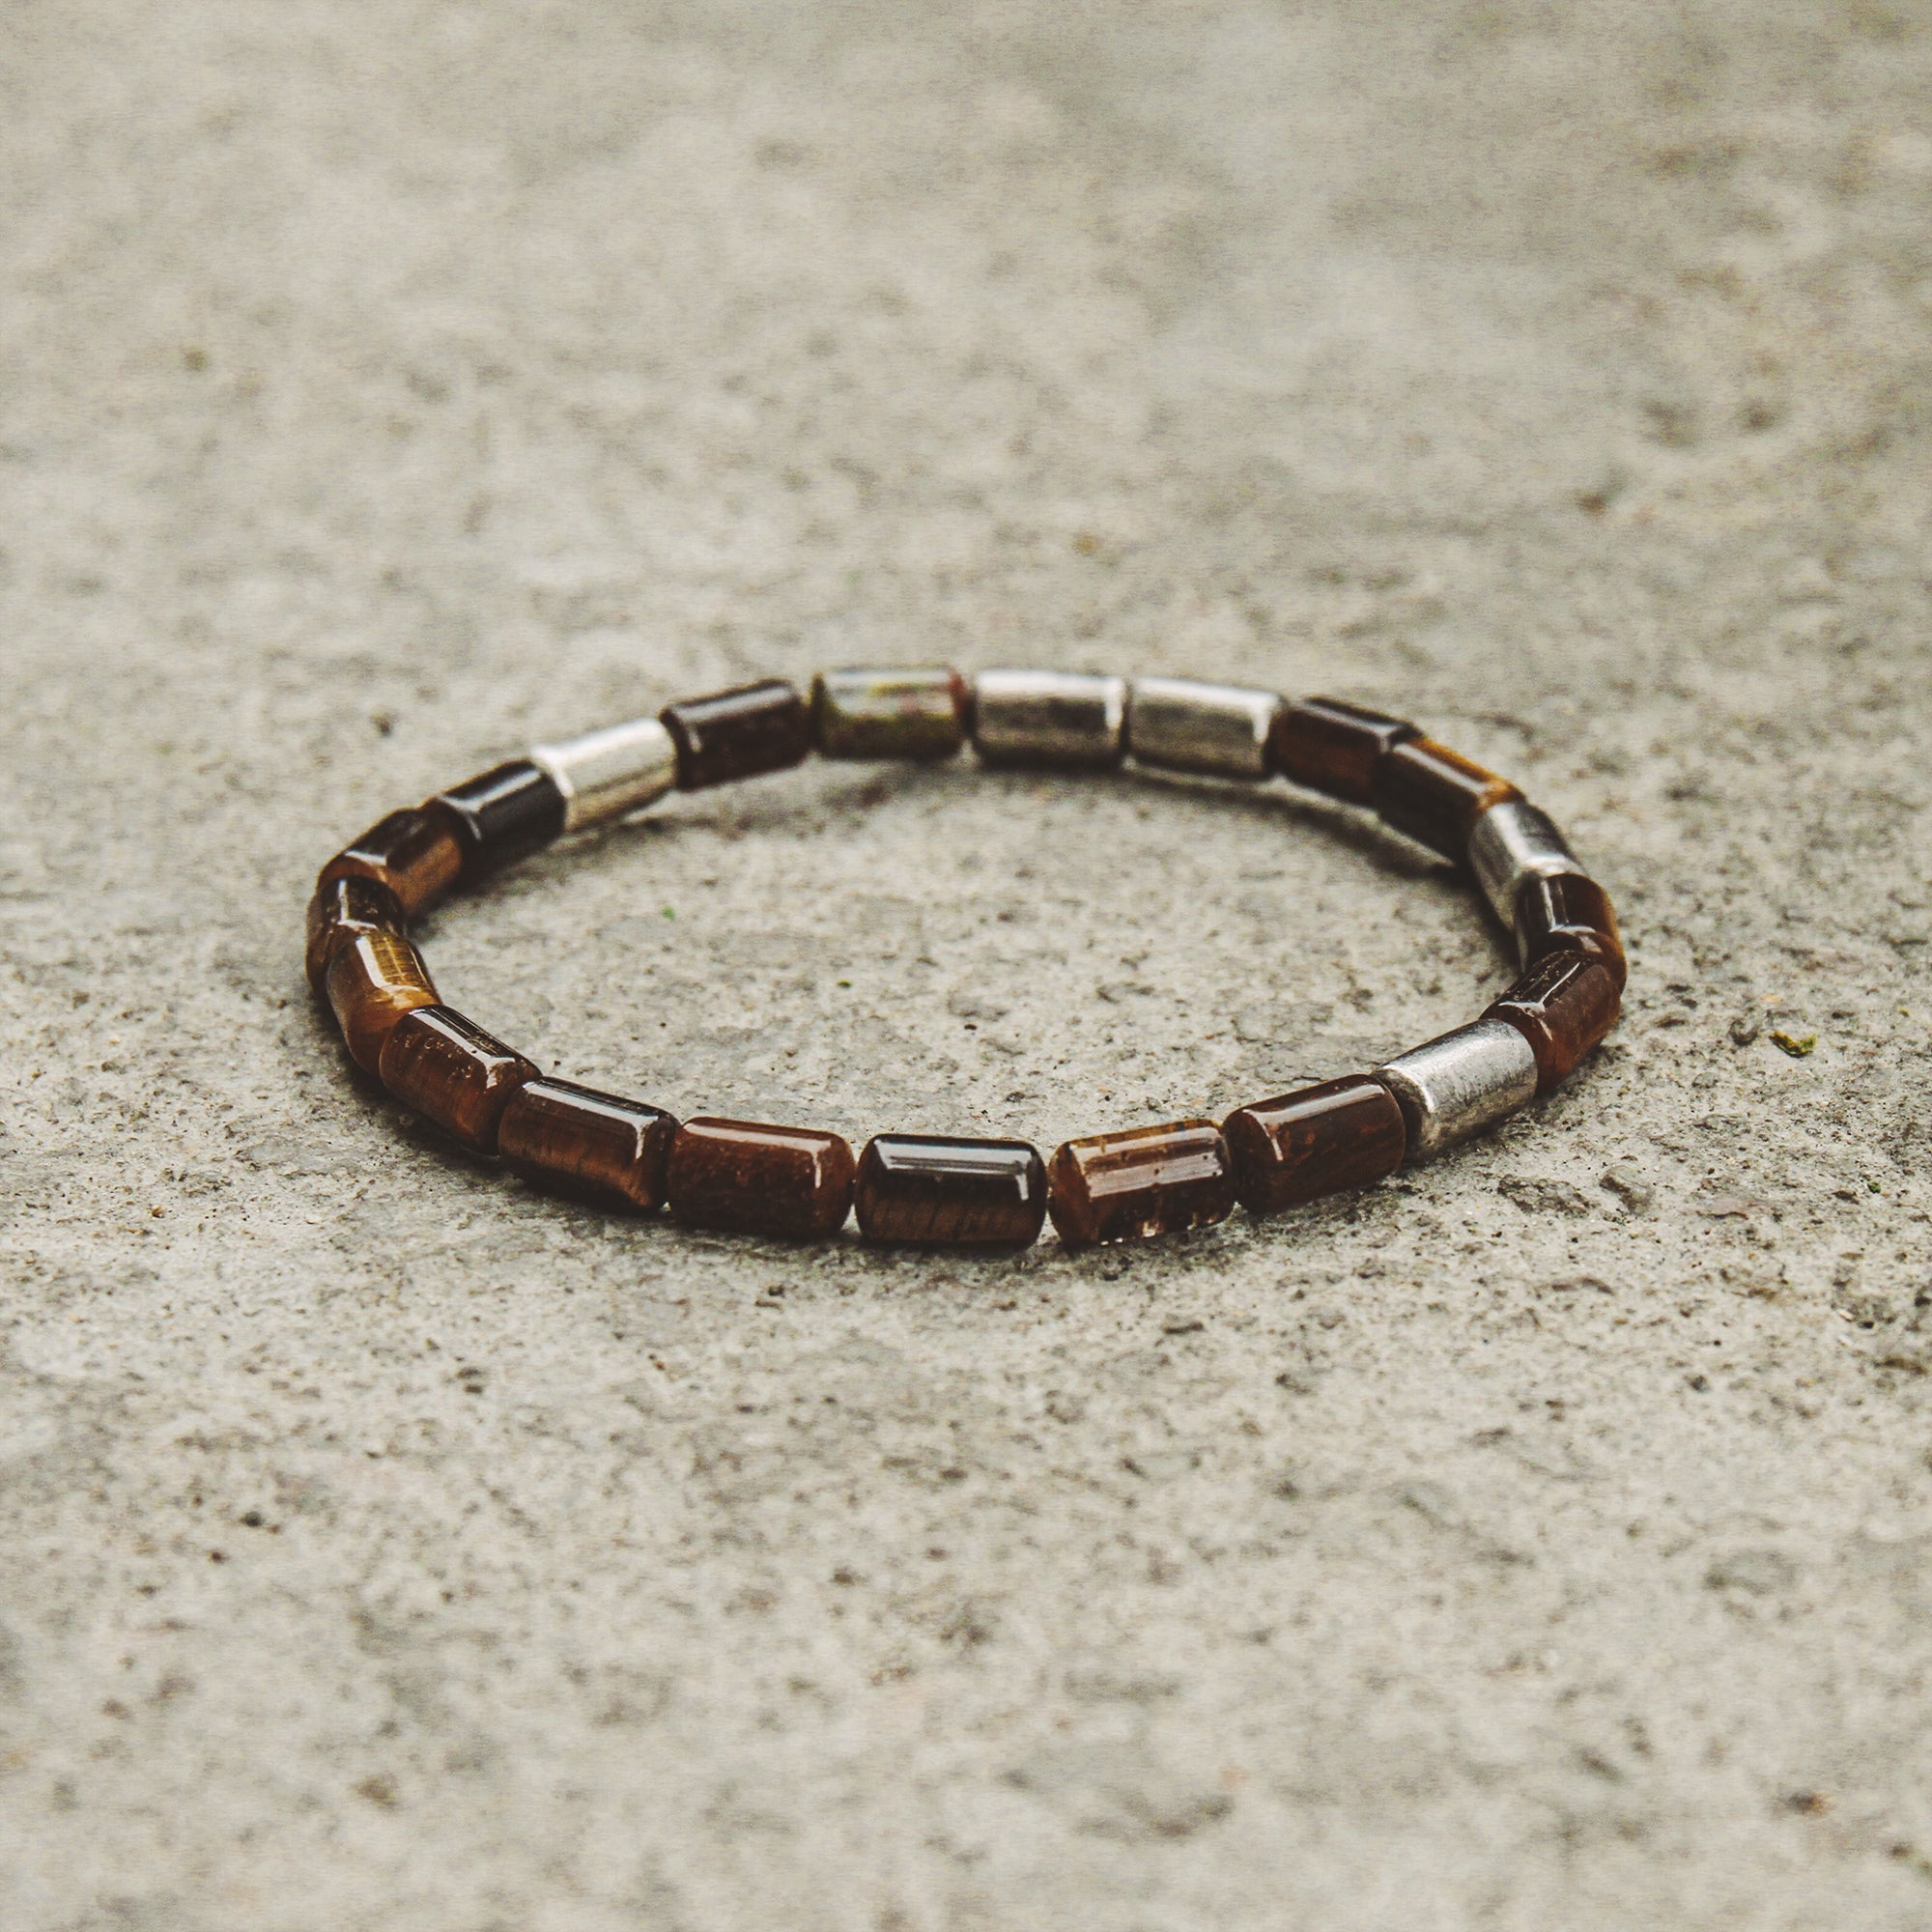 TIGER | Silver Bracelet with Tiger Eye and Black Oxidized Beads